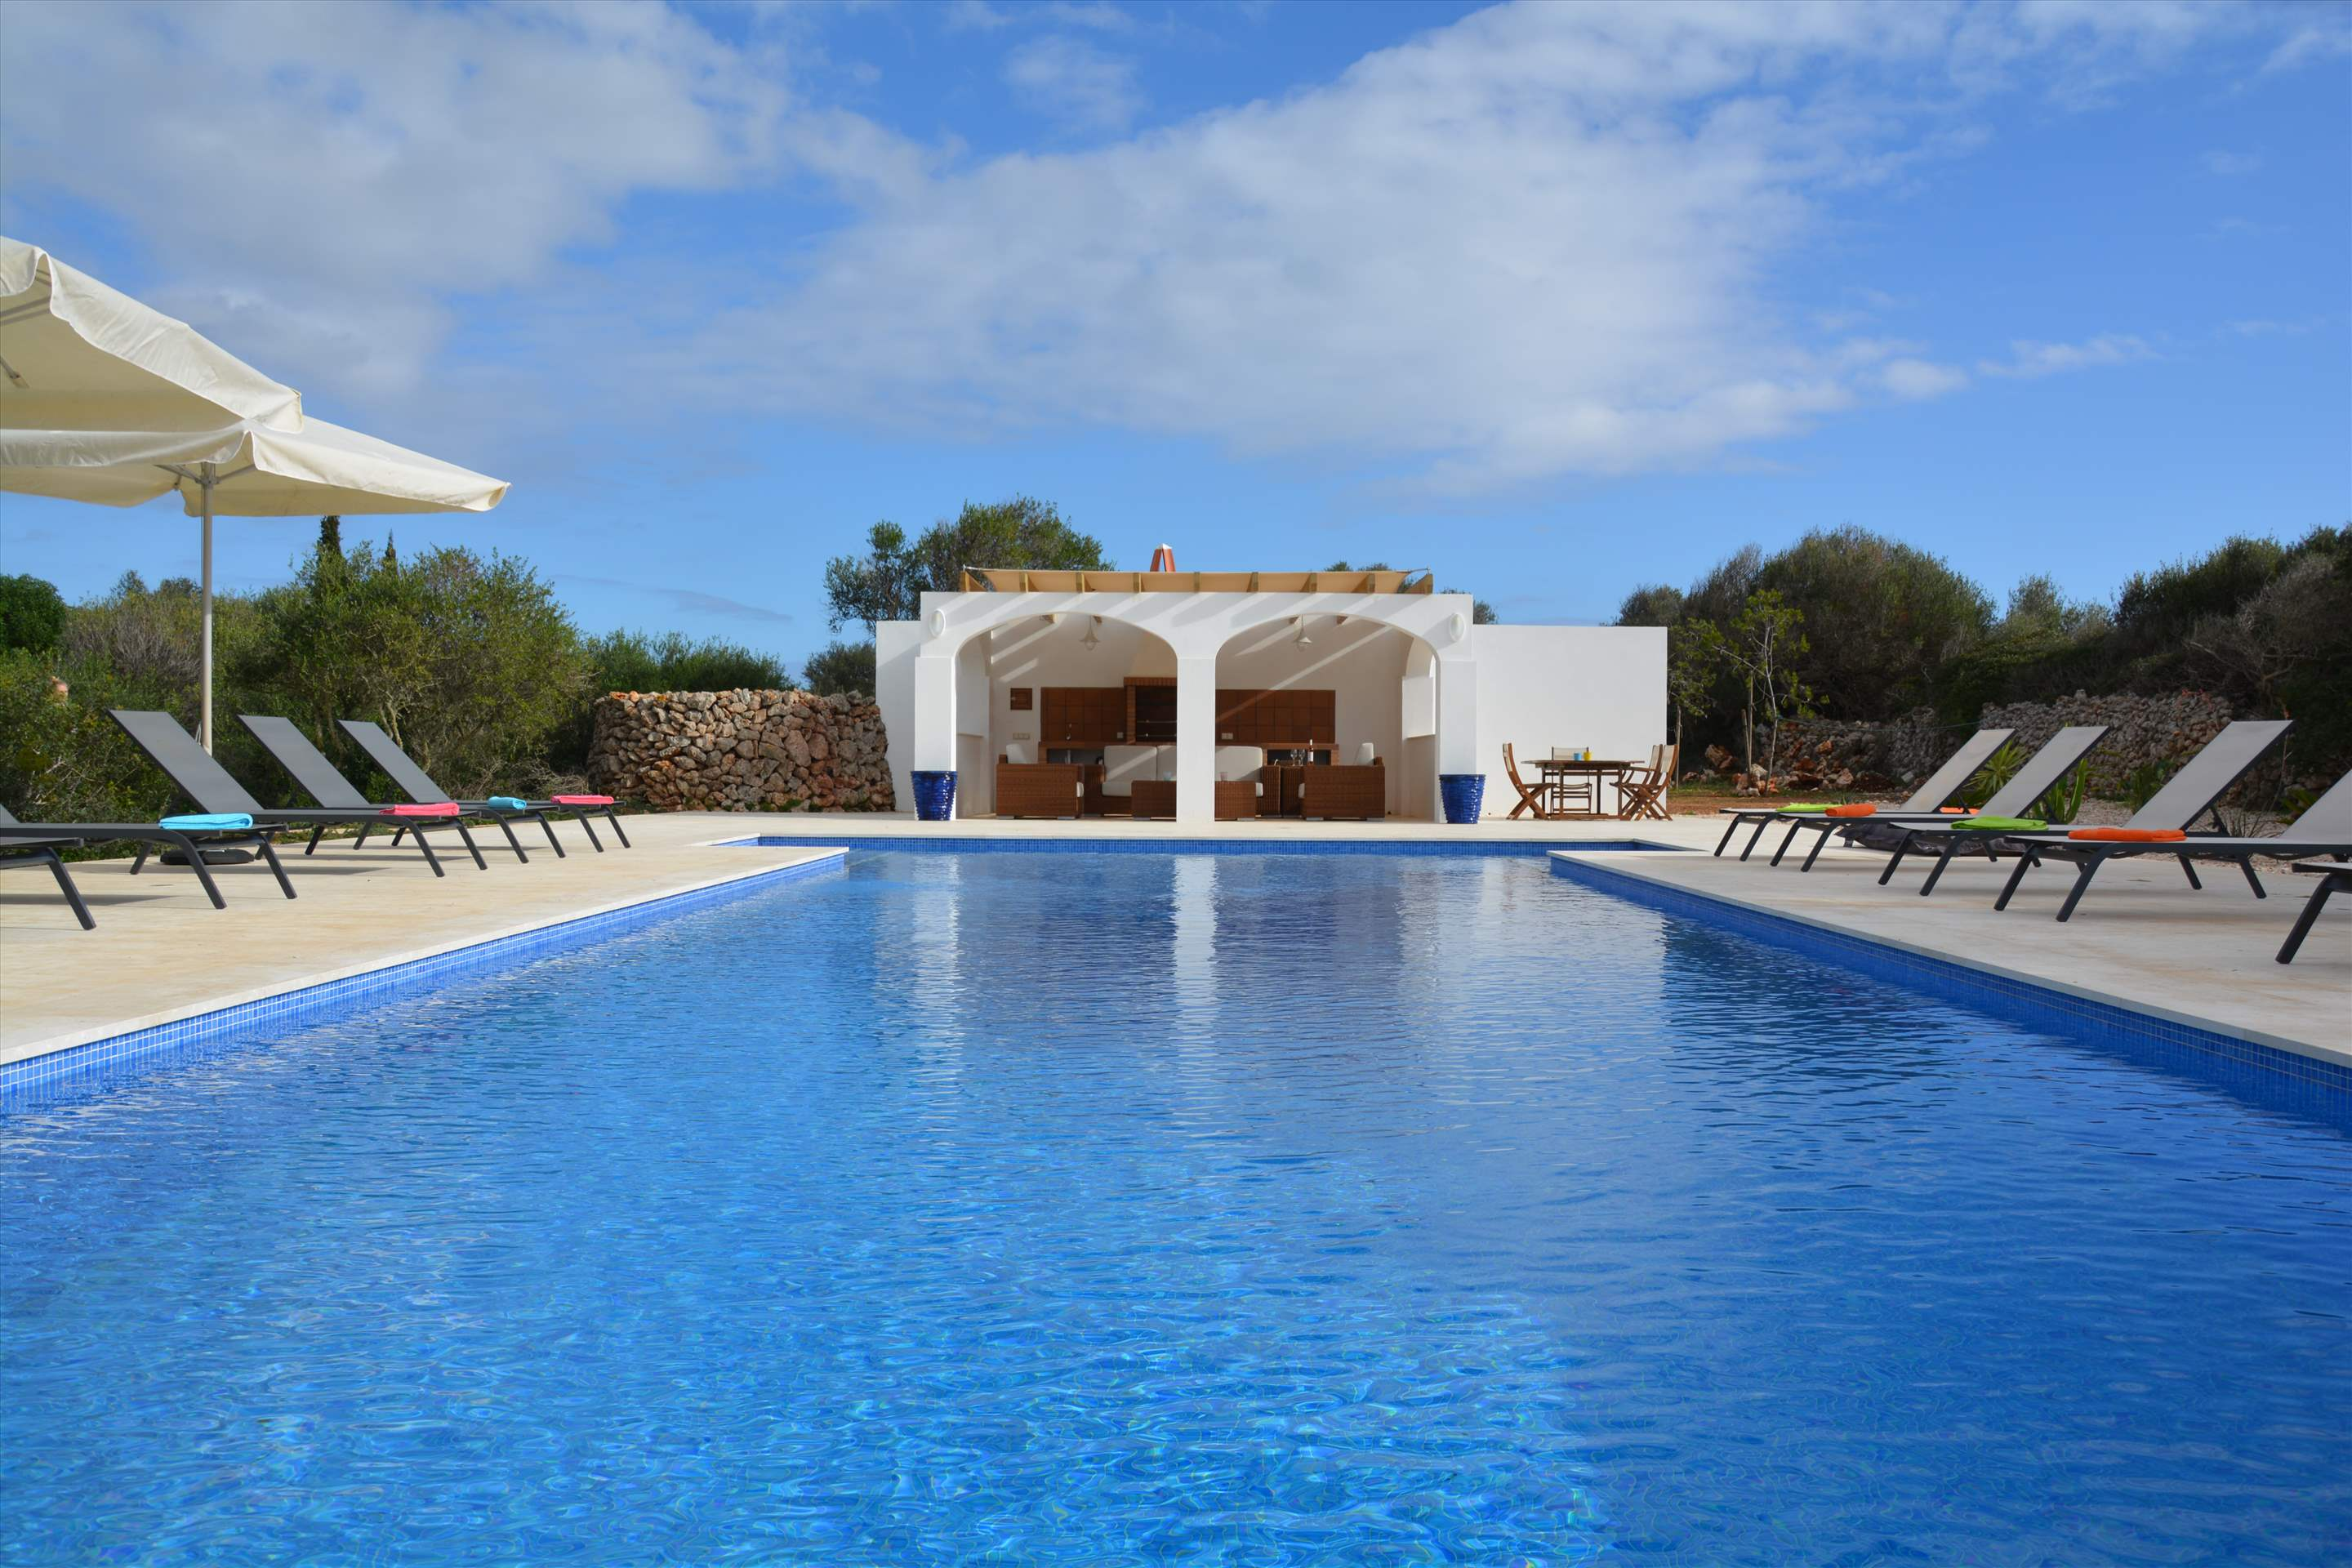 Les Arcs, 5 bedroom villa in Mahon, San Luis & South East, Menorca Photo #13